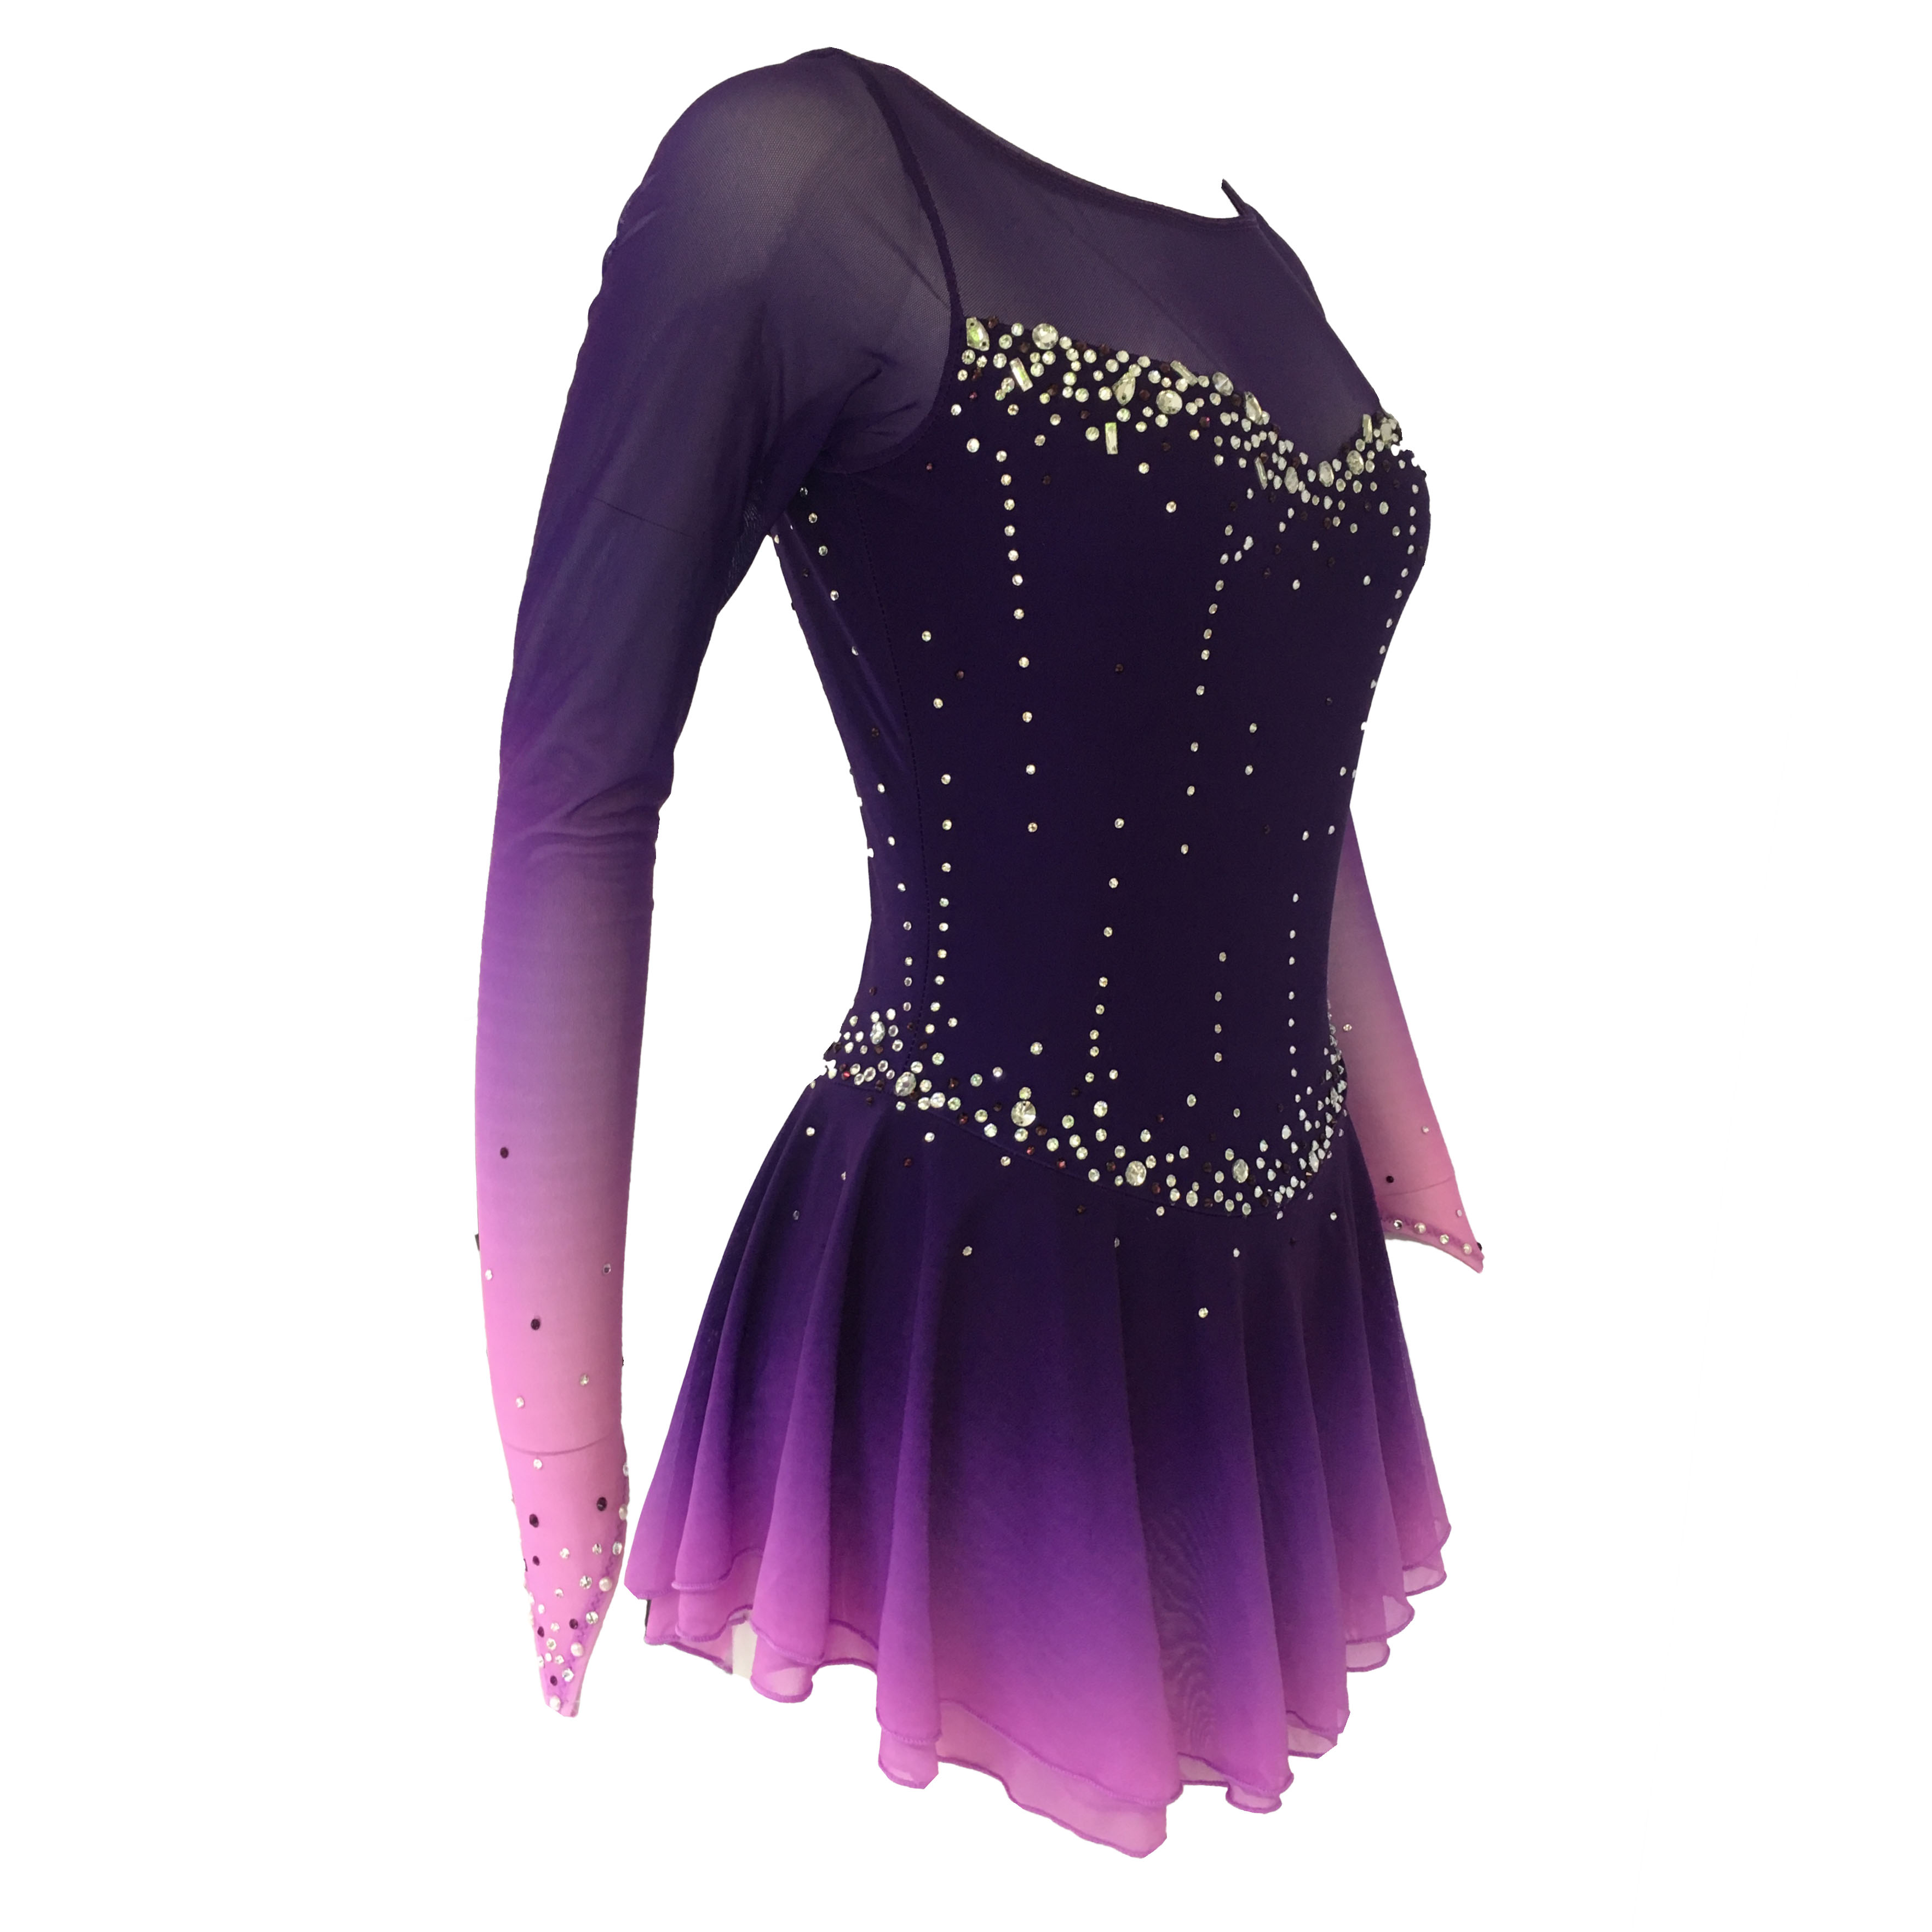 Skirt Figure-Skating-Dress Spandex Purple Long-Sleeved title=